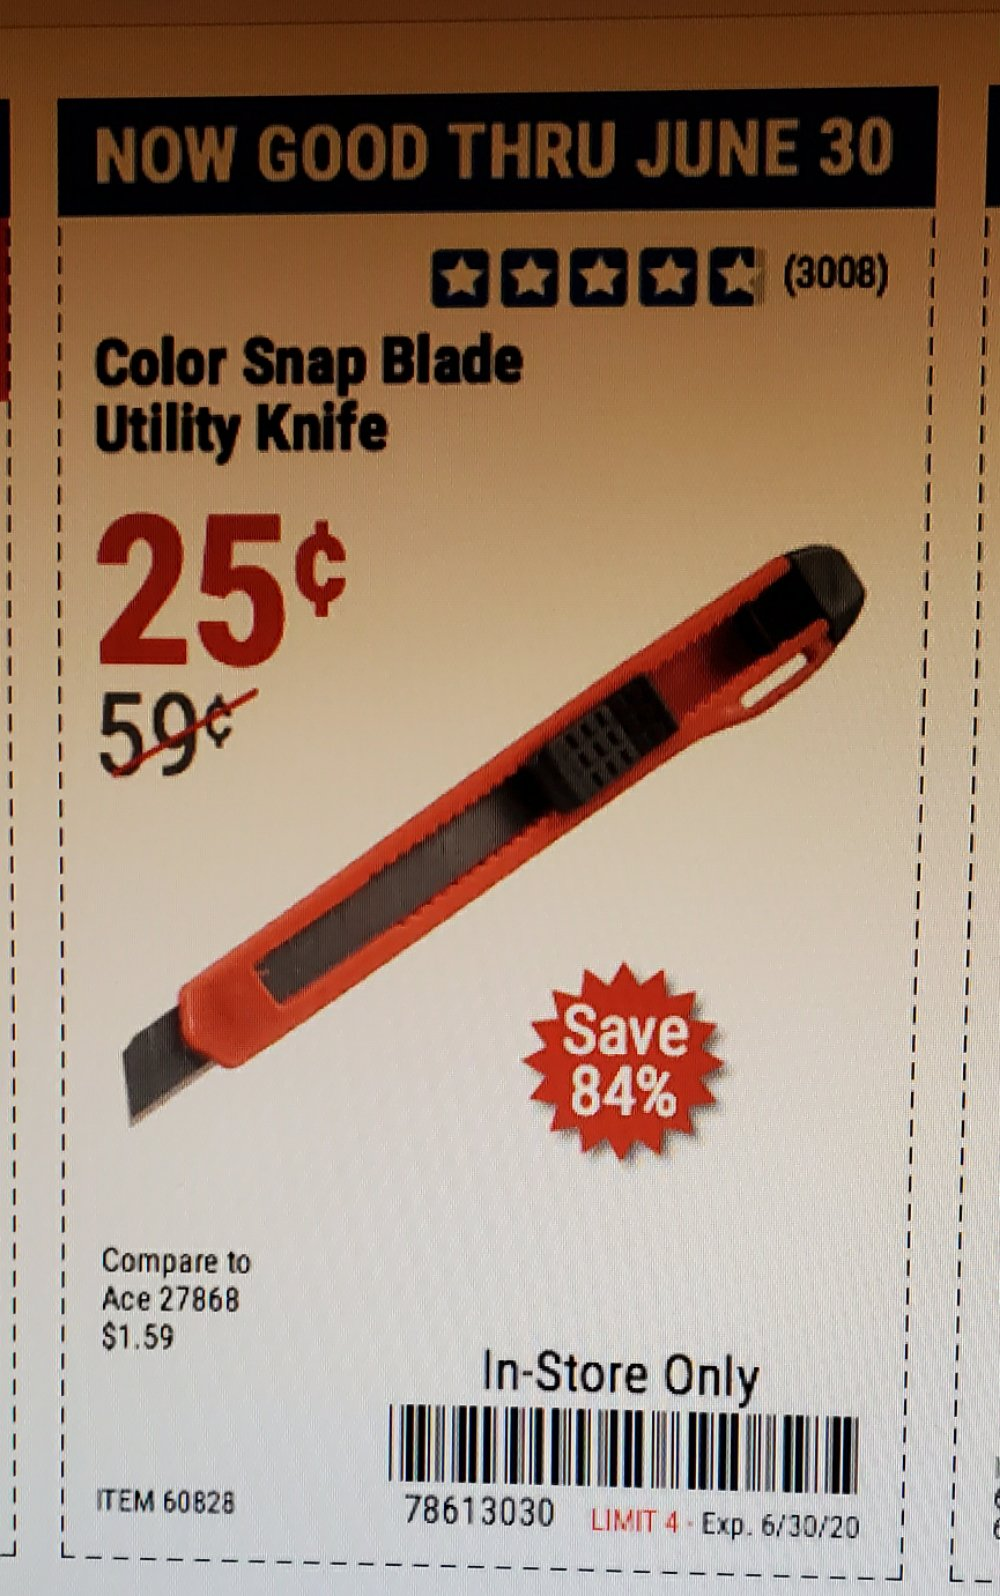 Harbor Freight Coupon, HF Coupons - Color Snap Blade Utility Knife